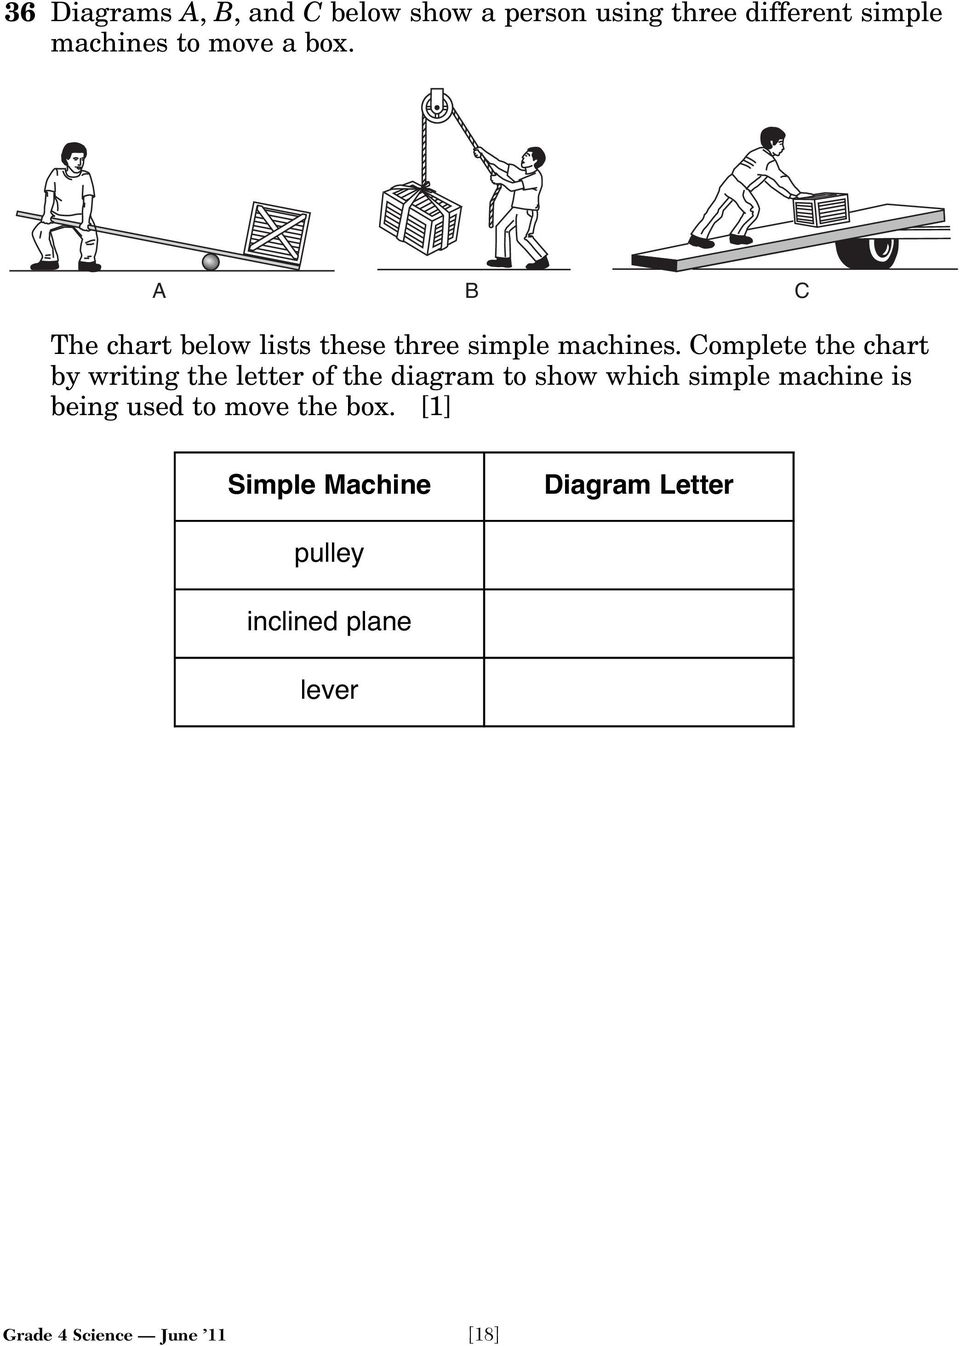 Complete the chart by writing the letter of the diagram to show which simple machine is